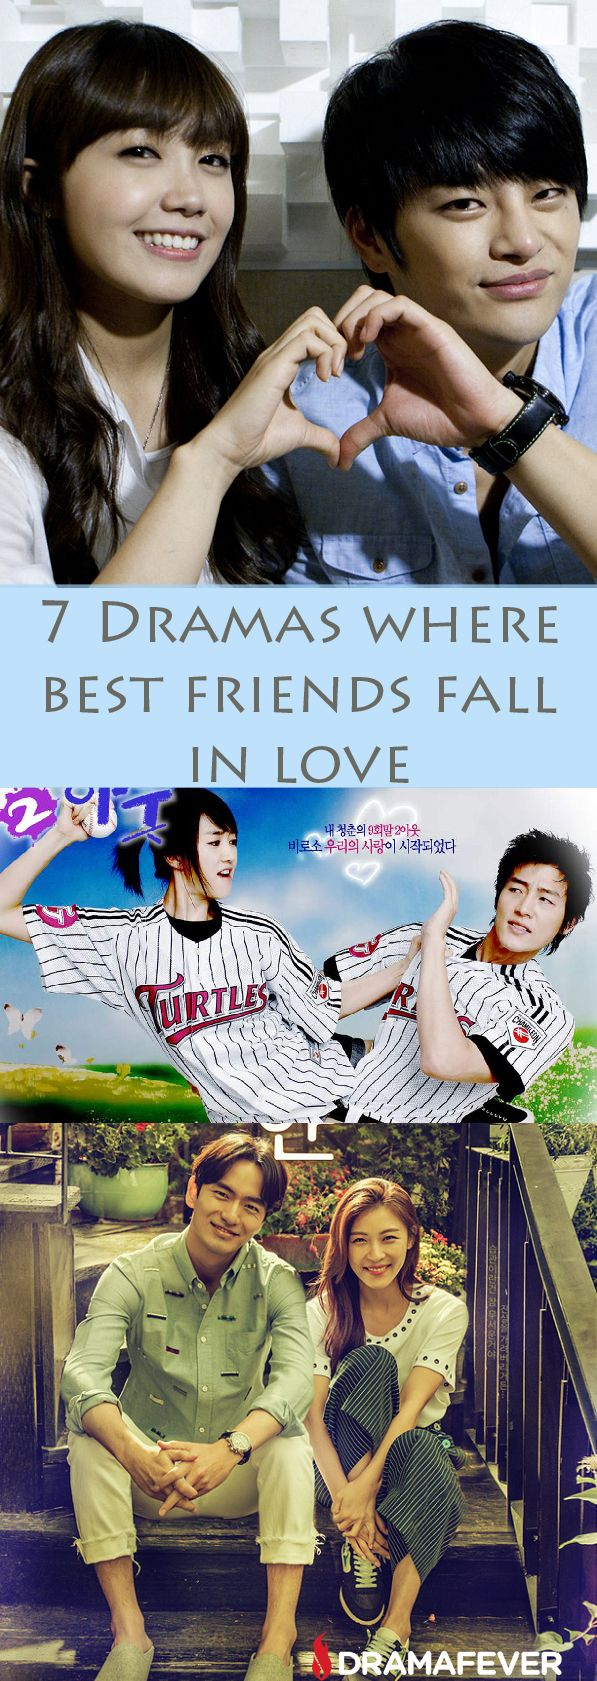 movies about best friends falling in love